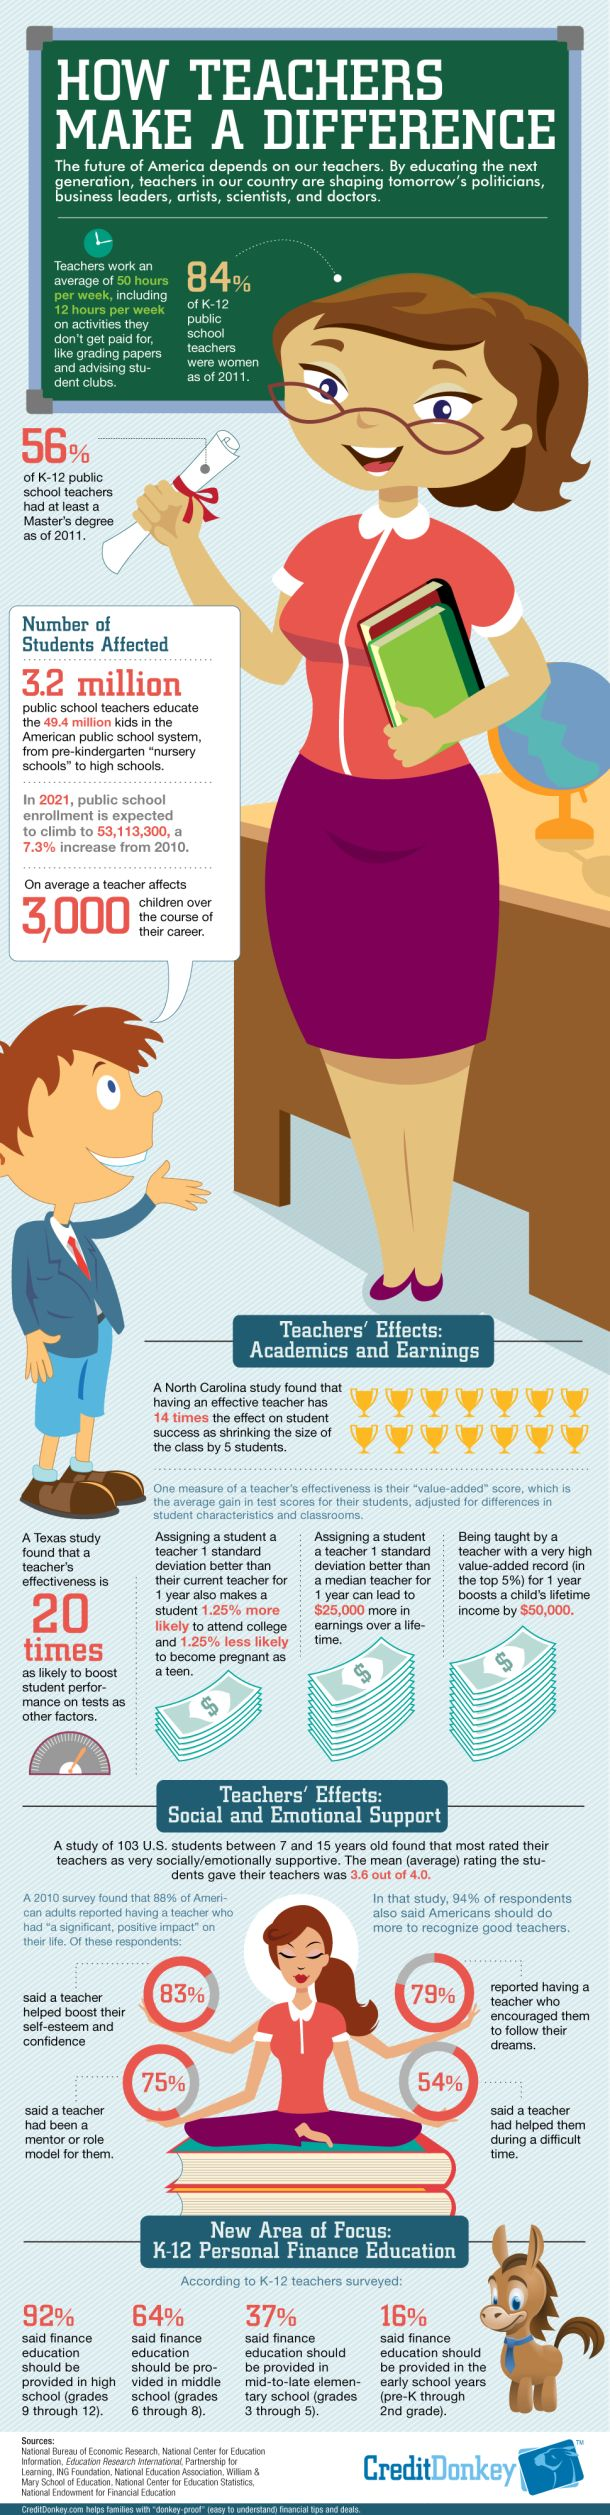 How Teachers Make A Difference [INFOGRAPHIC]